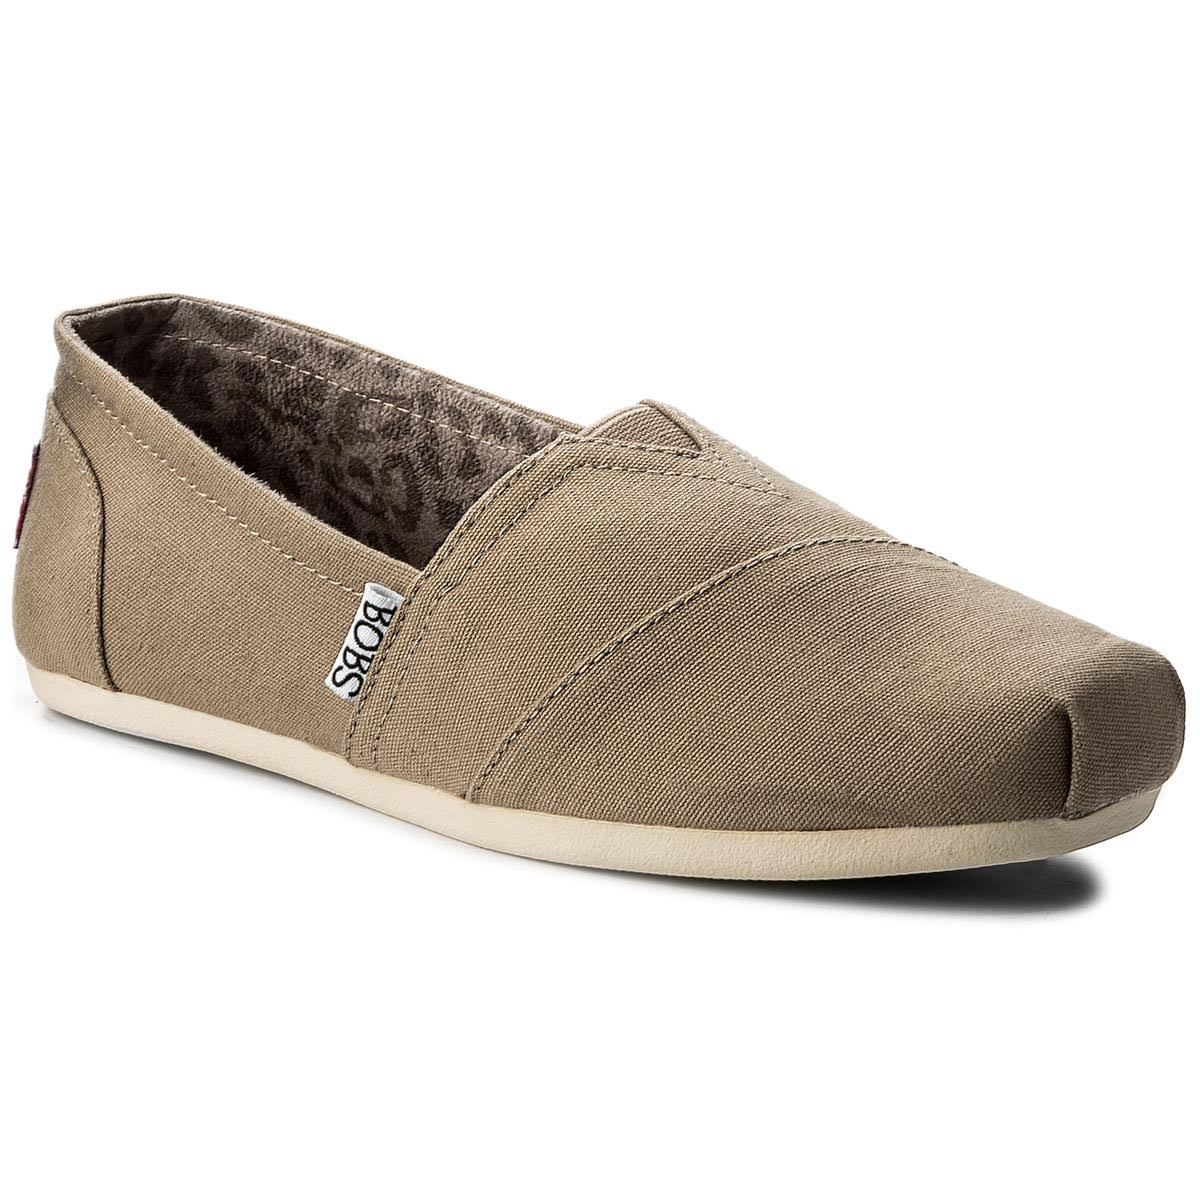 Skechers Women's Bobs Plush Peace and Love, Taupe